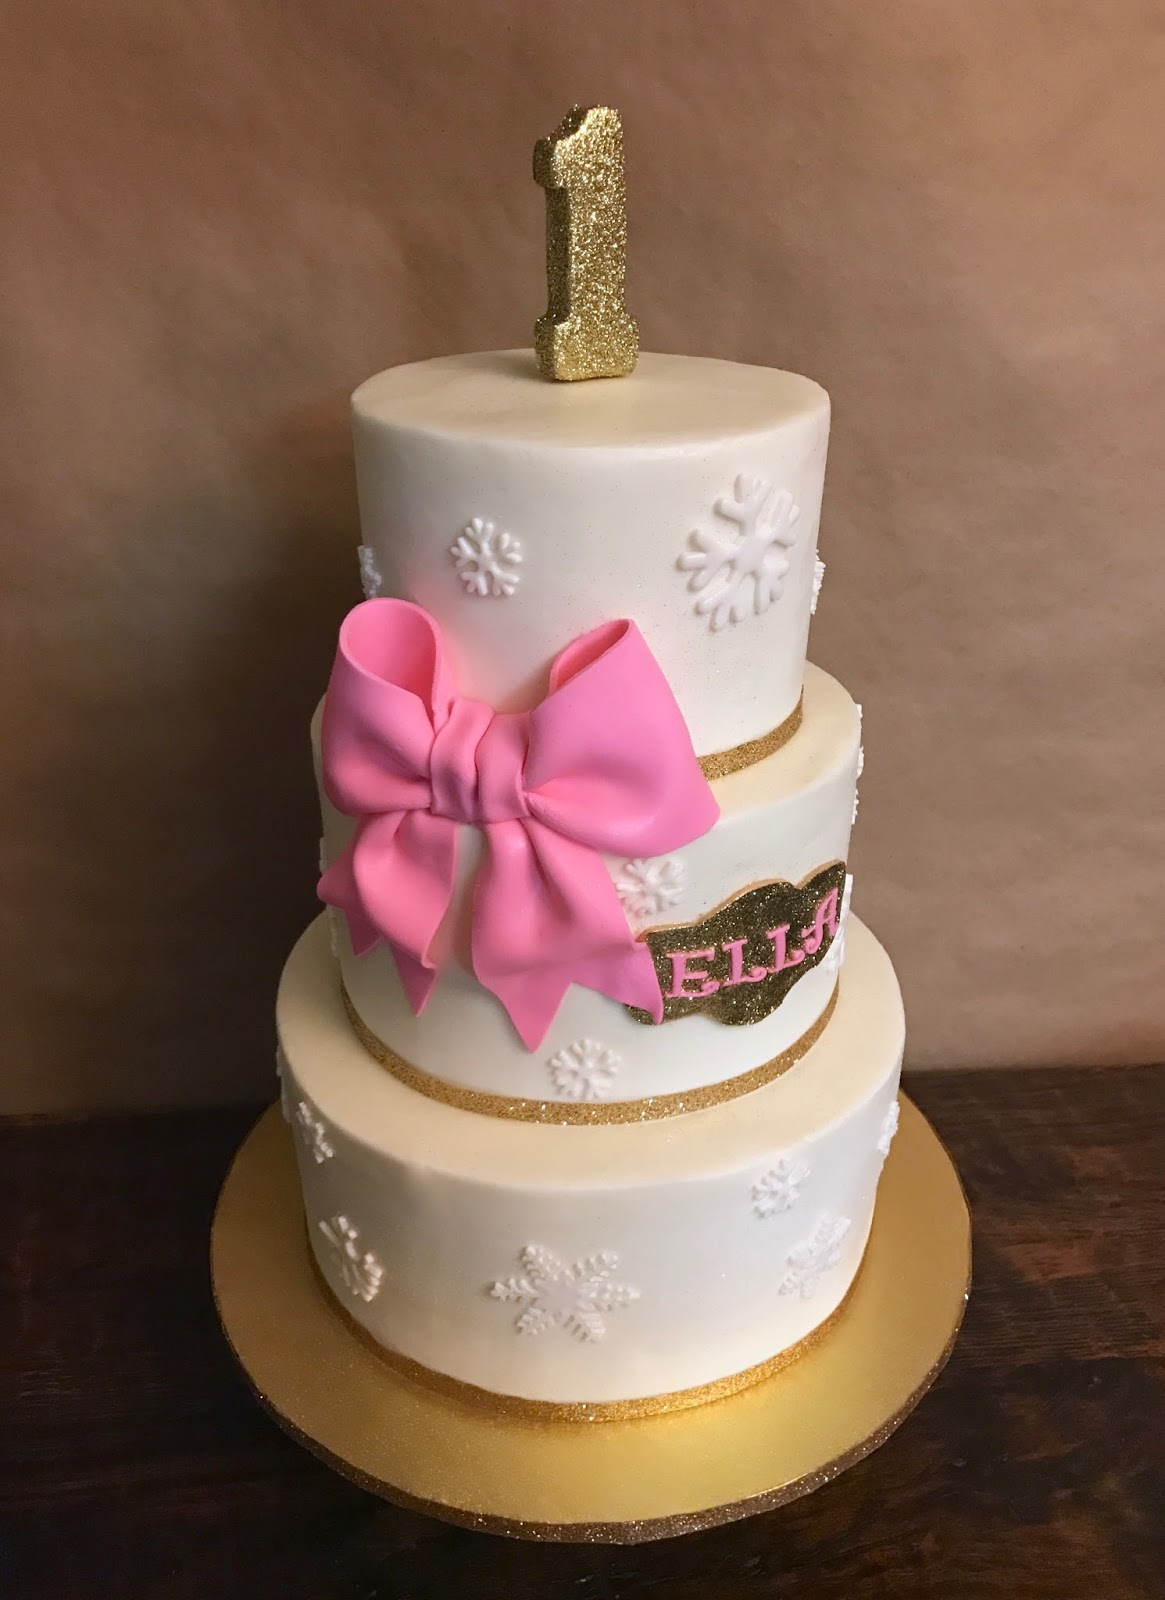 Cakes by Mindy: Pink and Gold Winter Wonderland Cake 6\